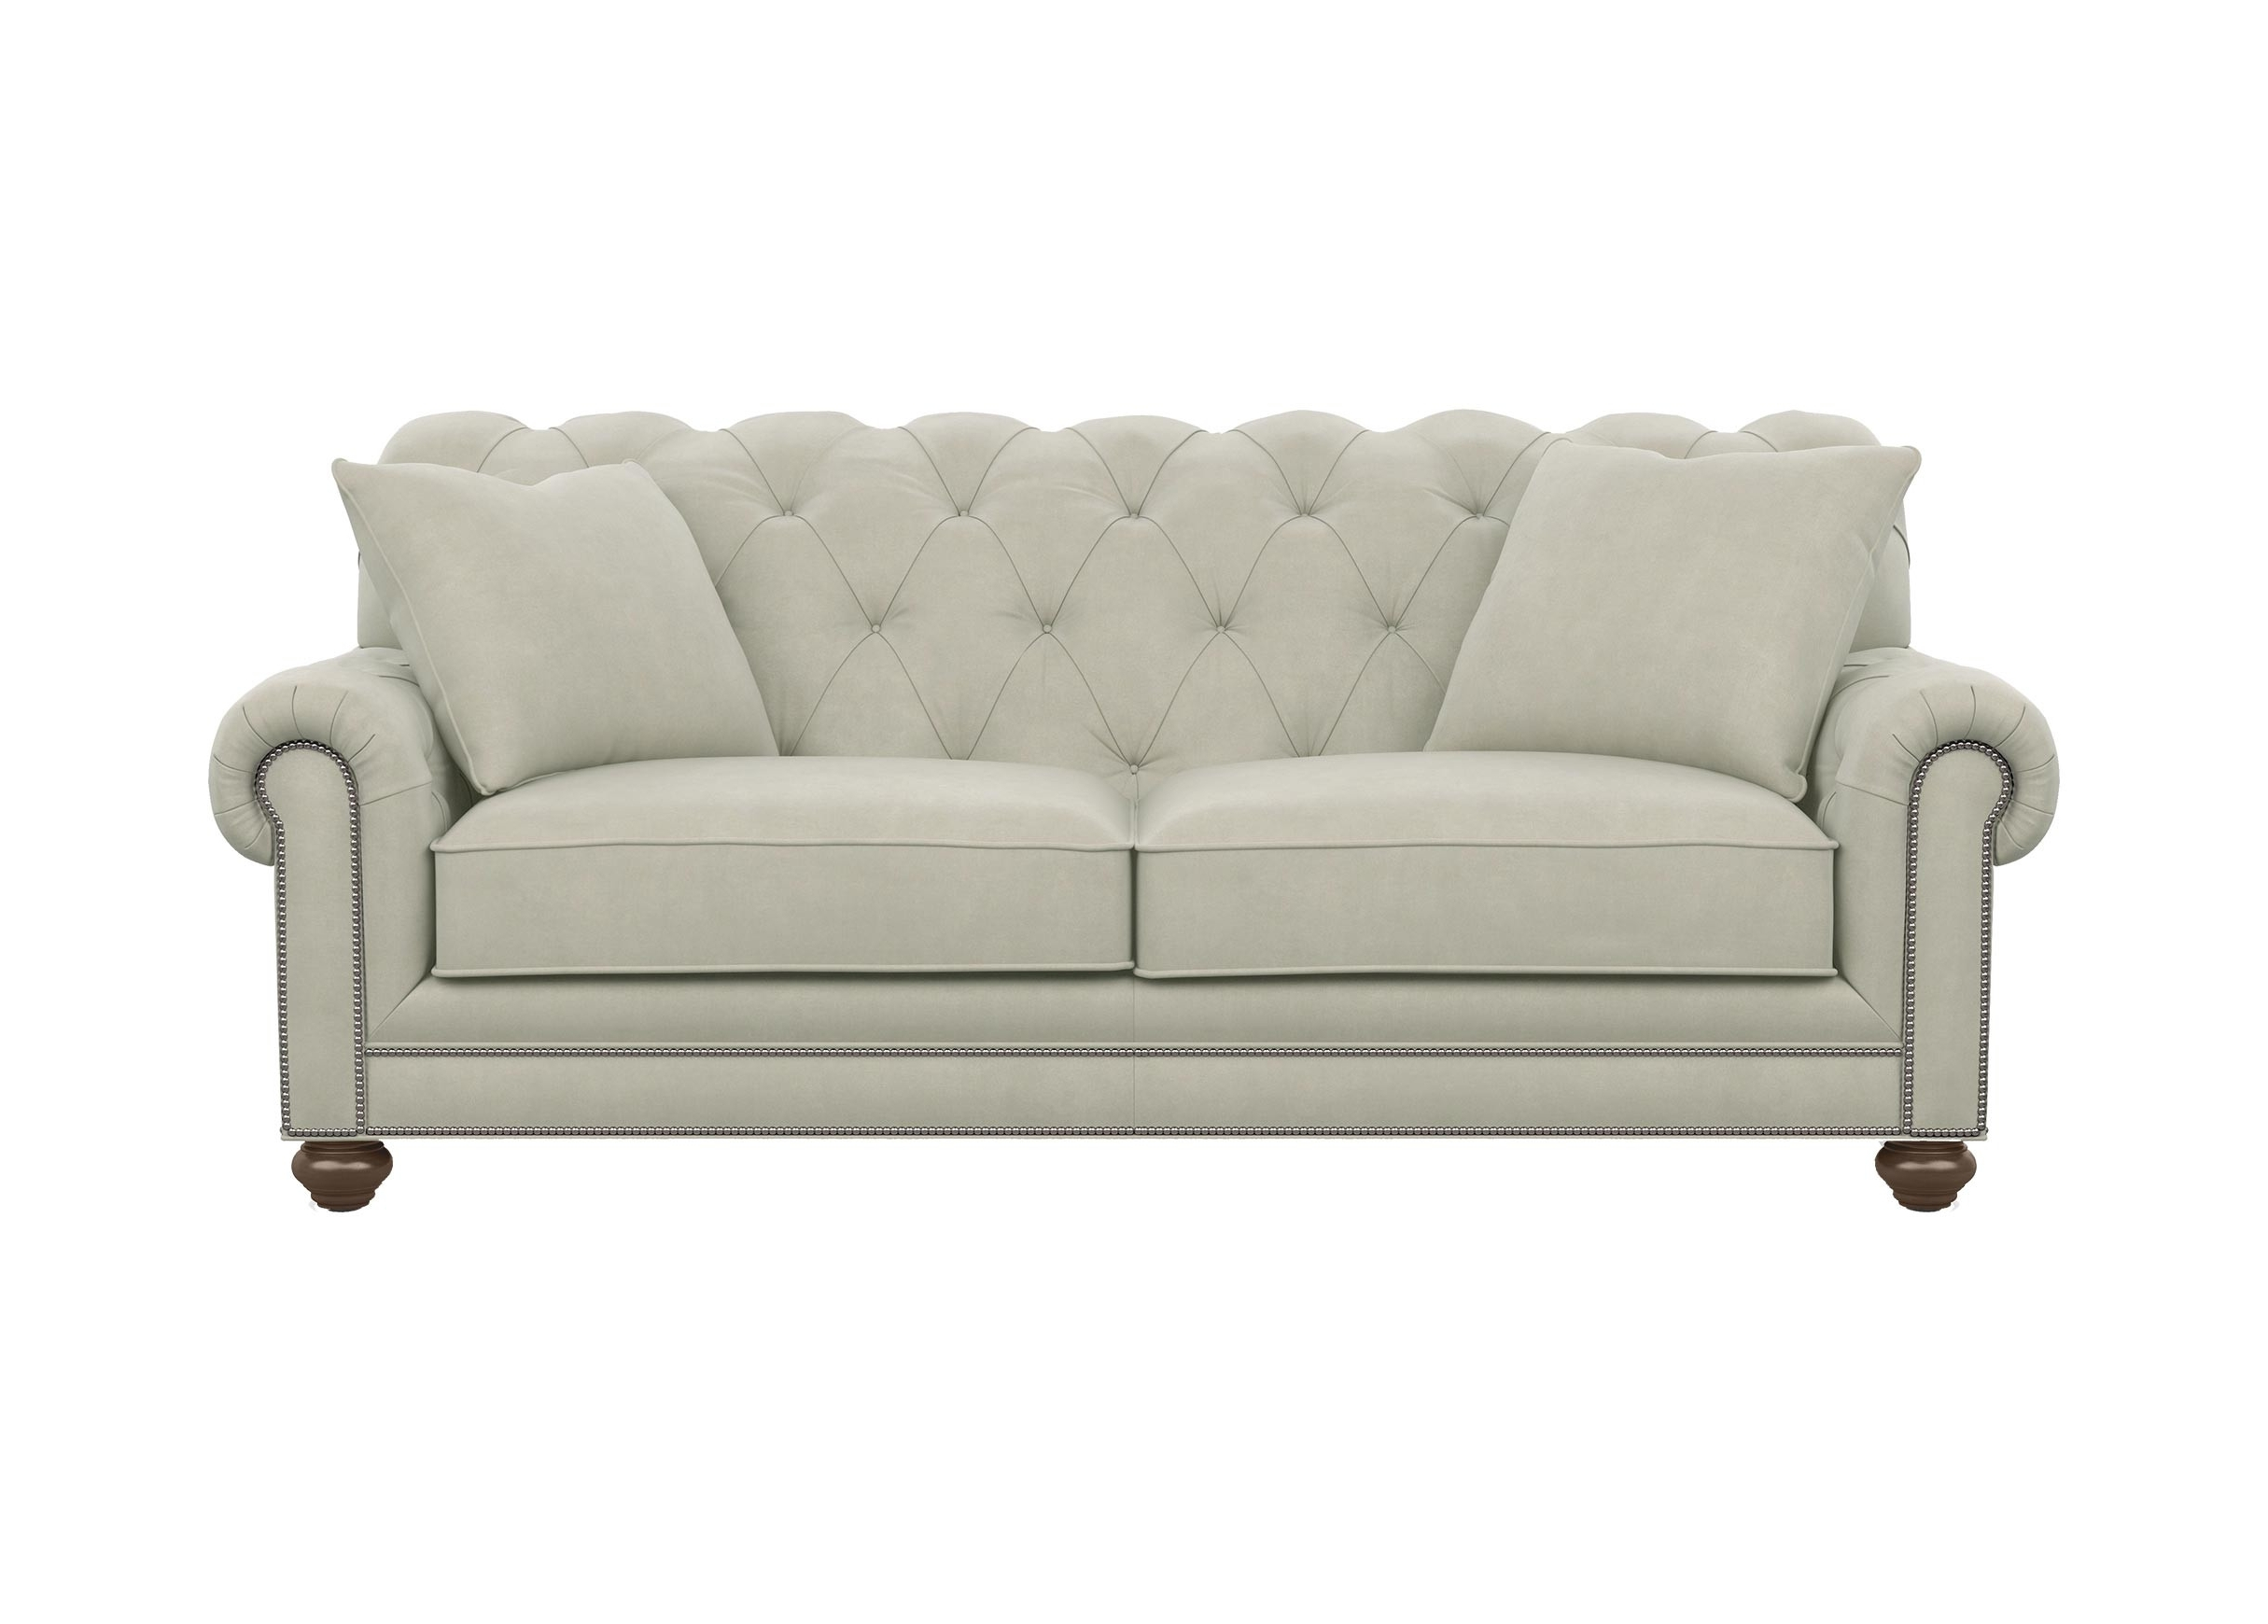 Most Popular Duluth Mn Sectional Sofas Throughout Furniture : Ethan Allen Down Filled Sofa Beautiful Sectional Sofas (View 15 of 20)